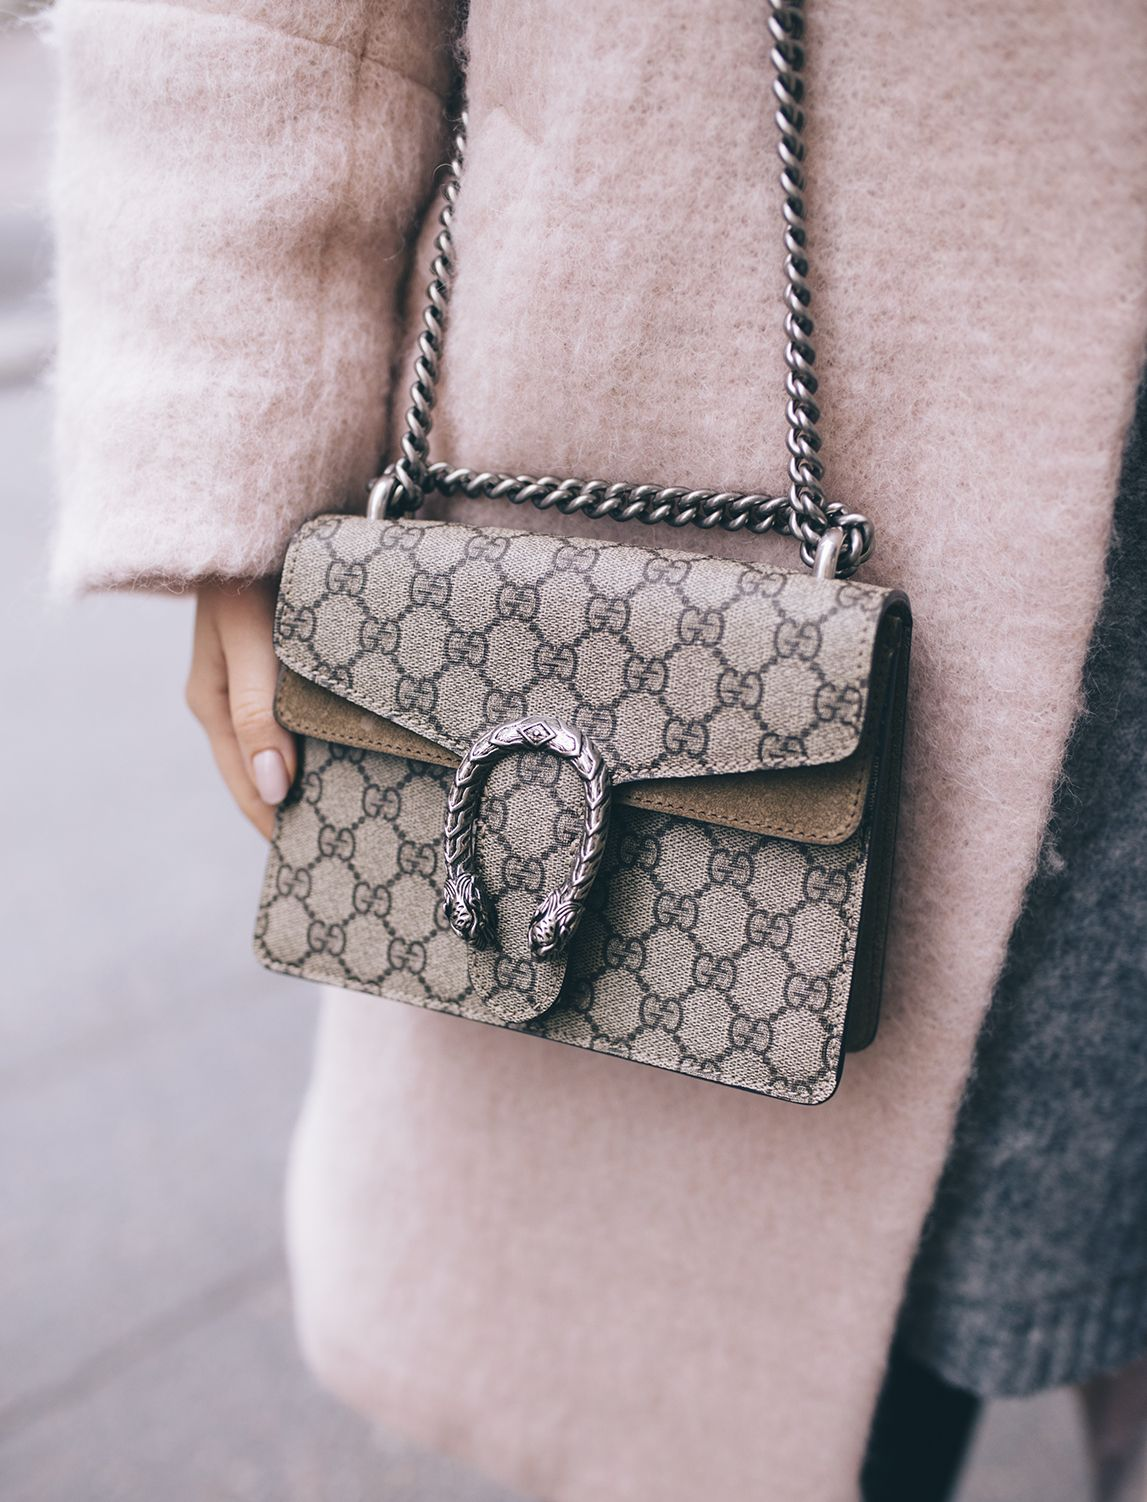 Pin By Milagros Messmer On Bags Gucci Bag Dionysus Gucci Bag